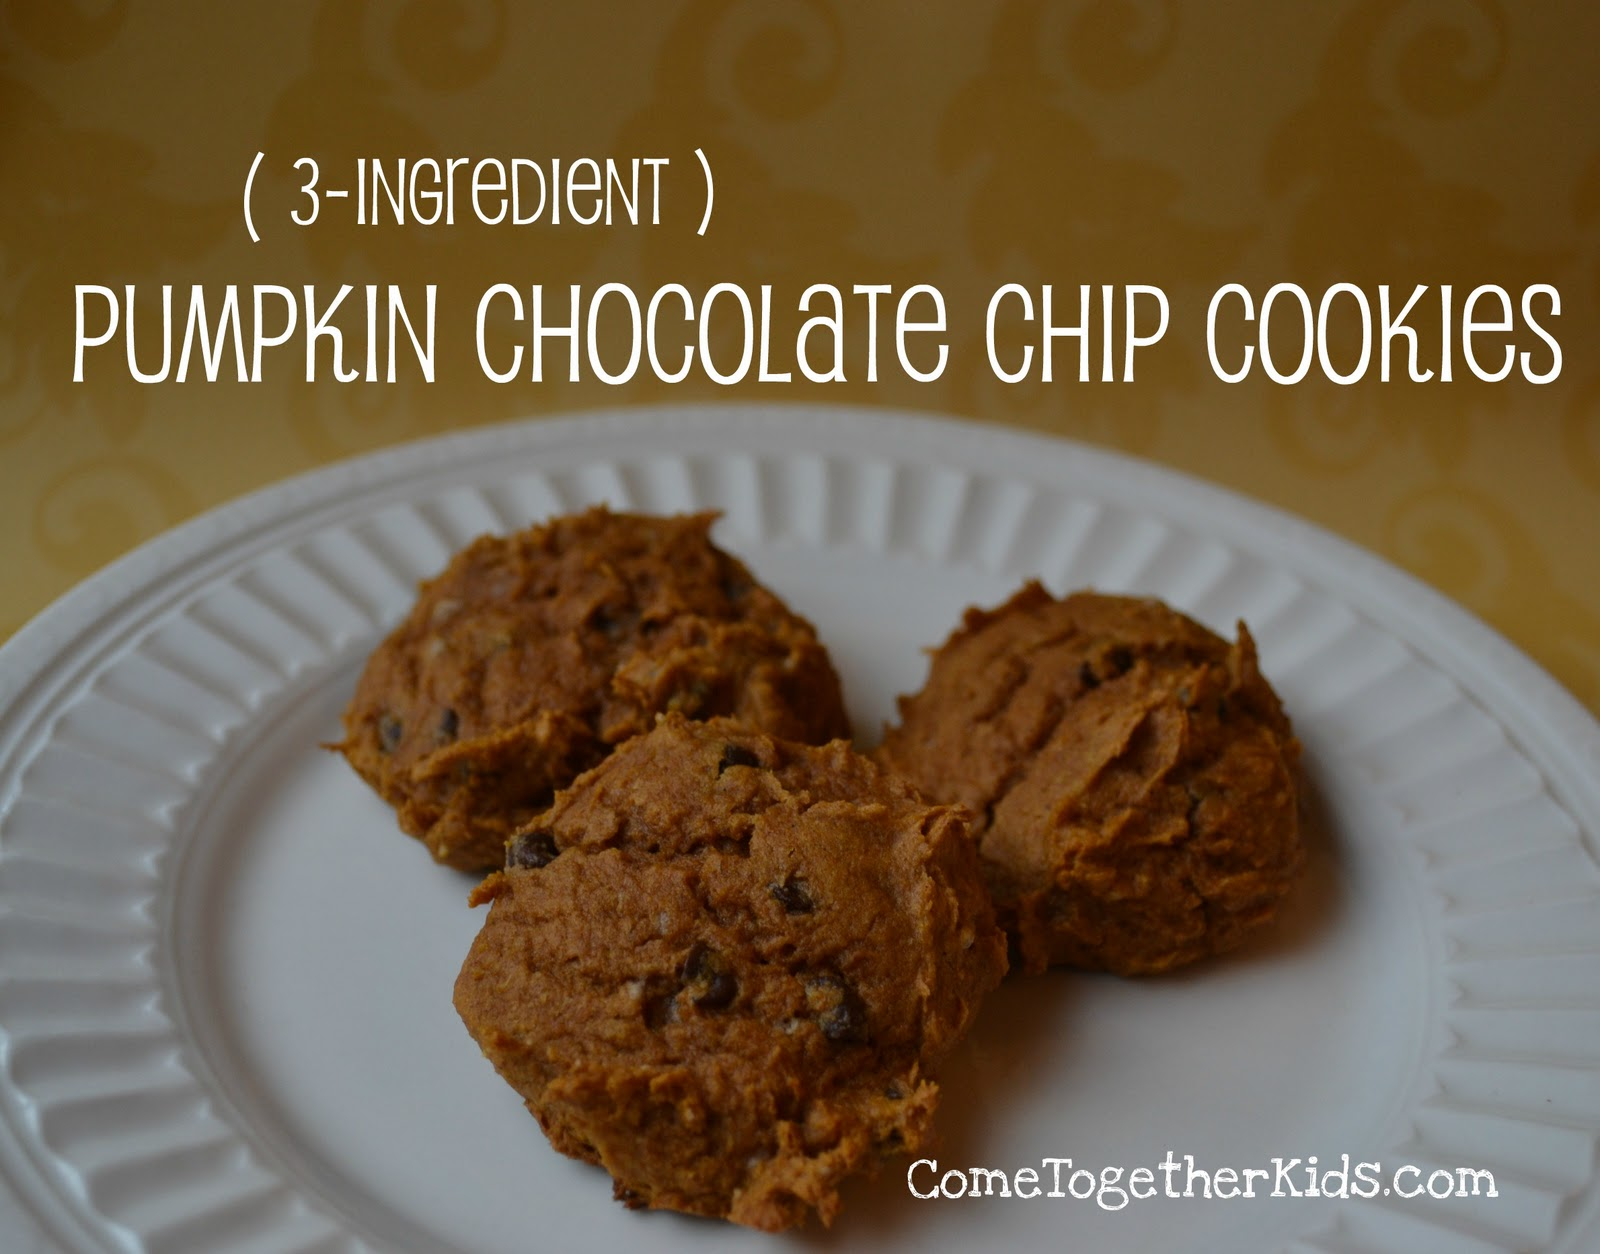 Come Together Kids: Pumpkin Chocolate Chip Cookies (3-ingredients)